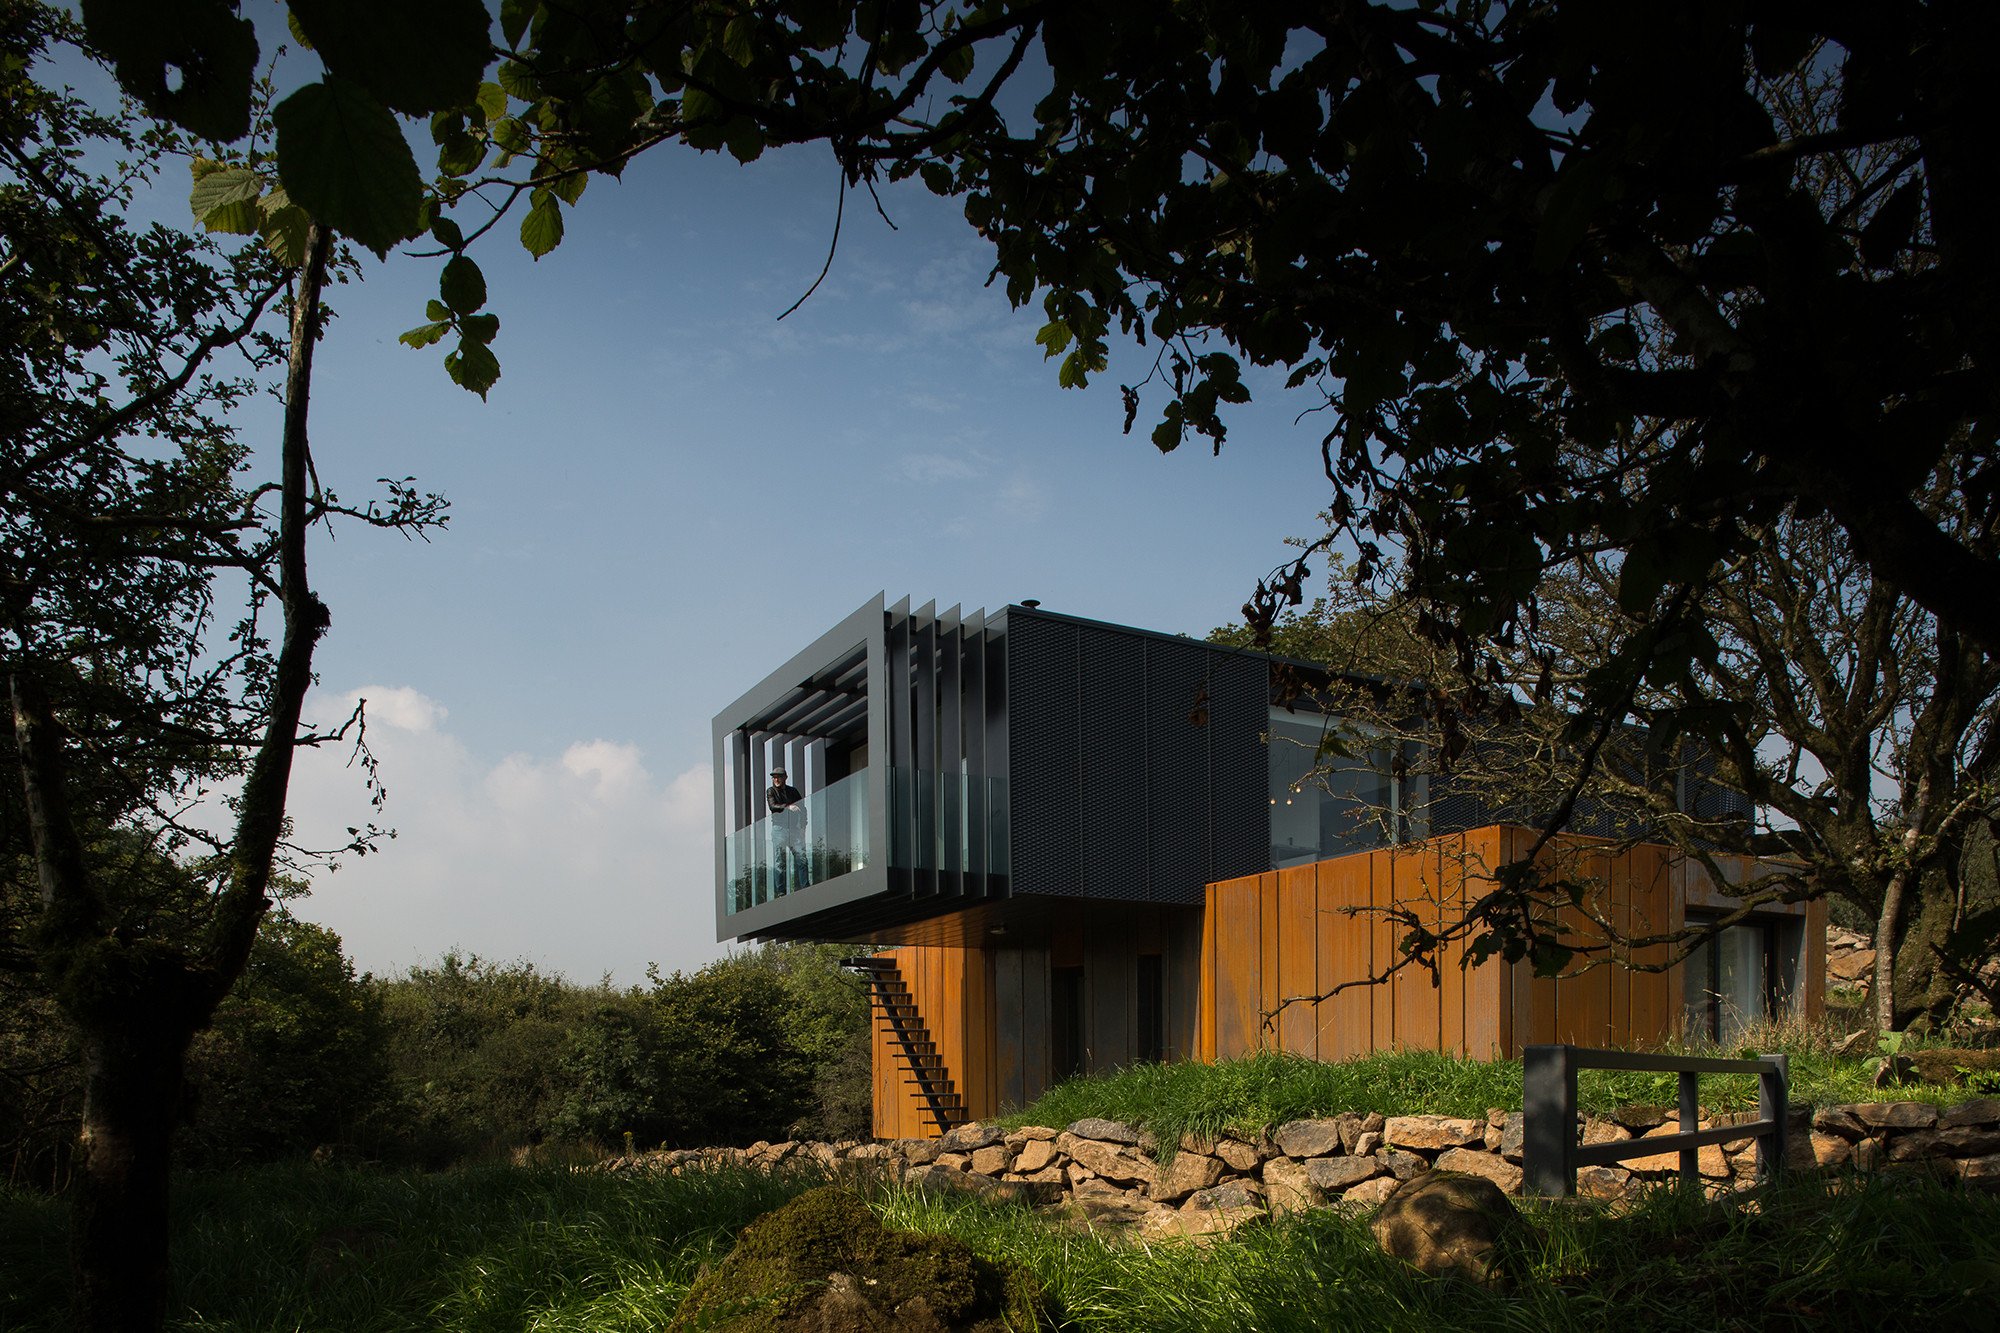 Casa de Agua en Grillagh / Patrick Bradley Architects, © Aidan Monaghan Photography